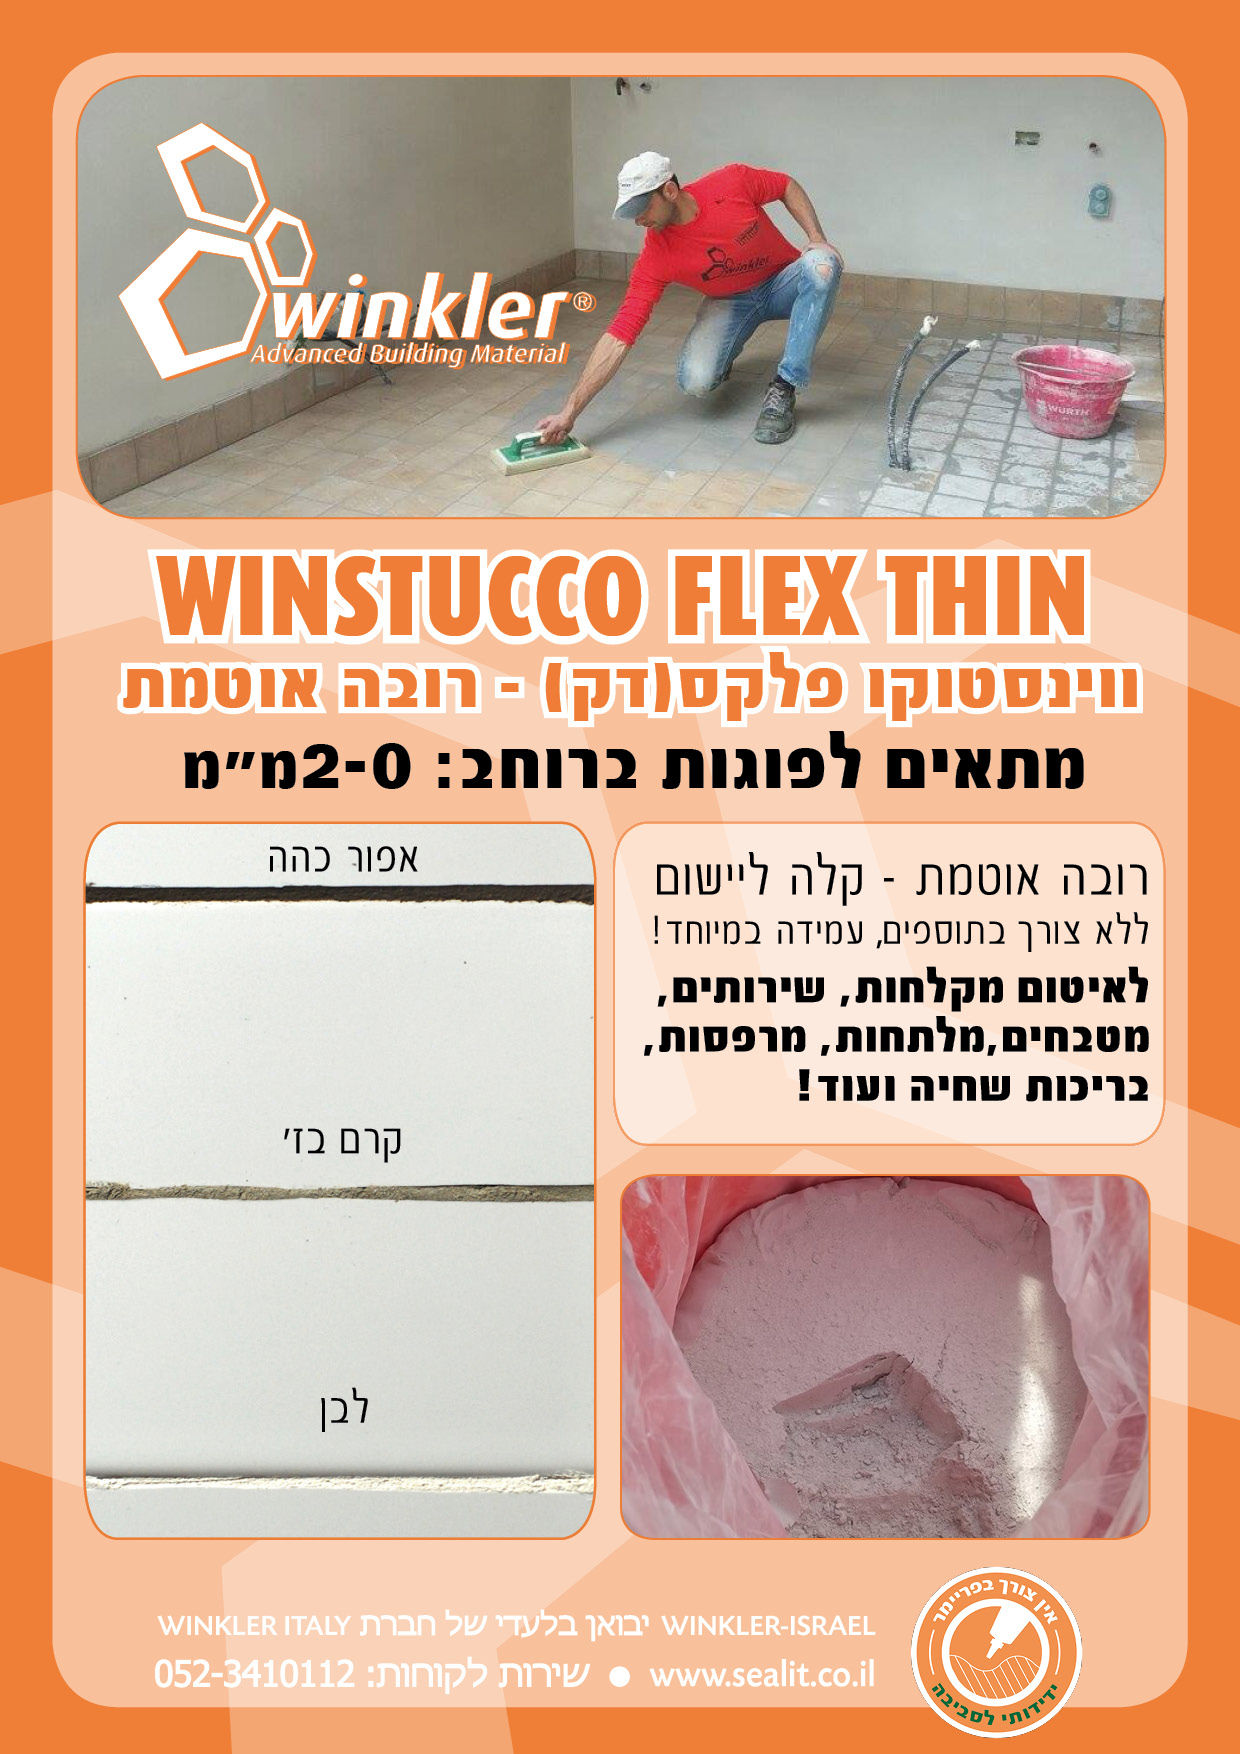 flyer-winstucco flex thin